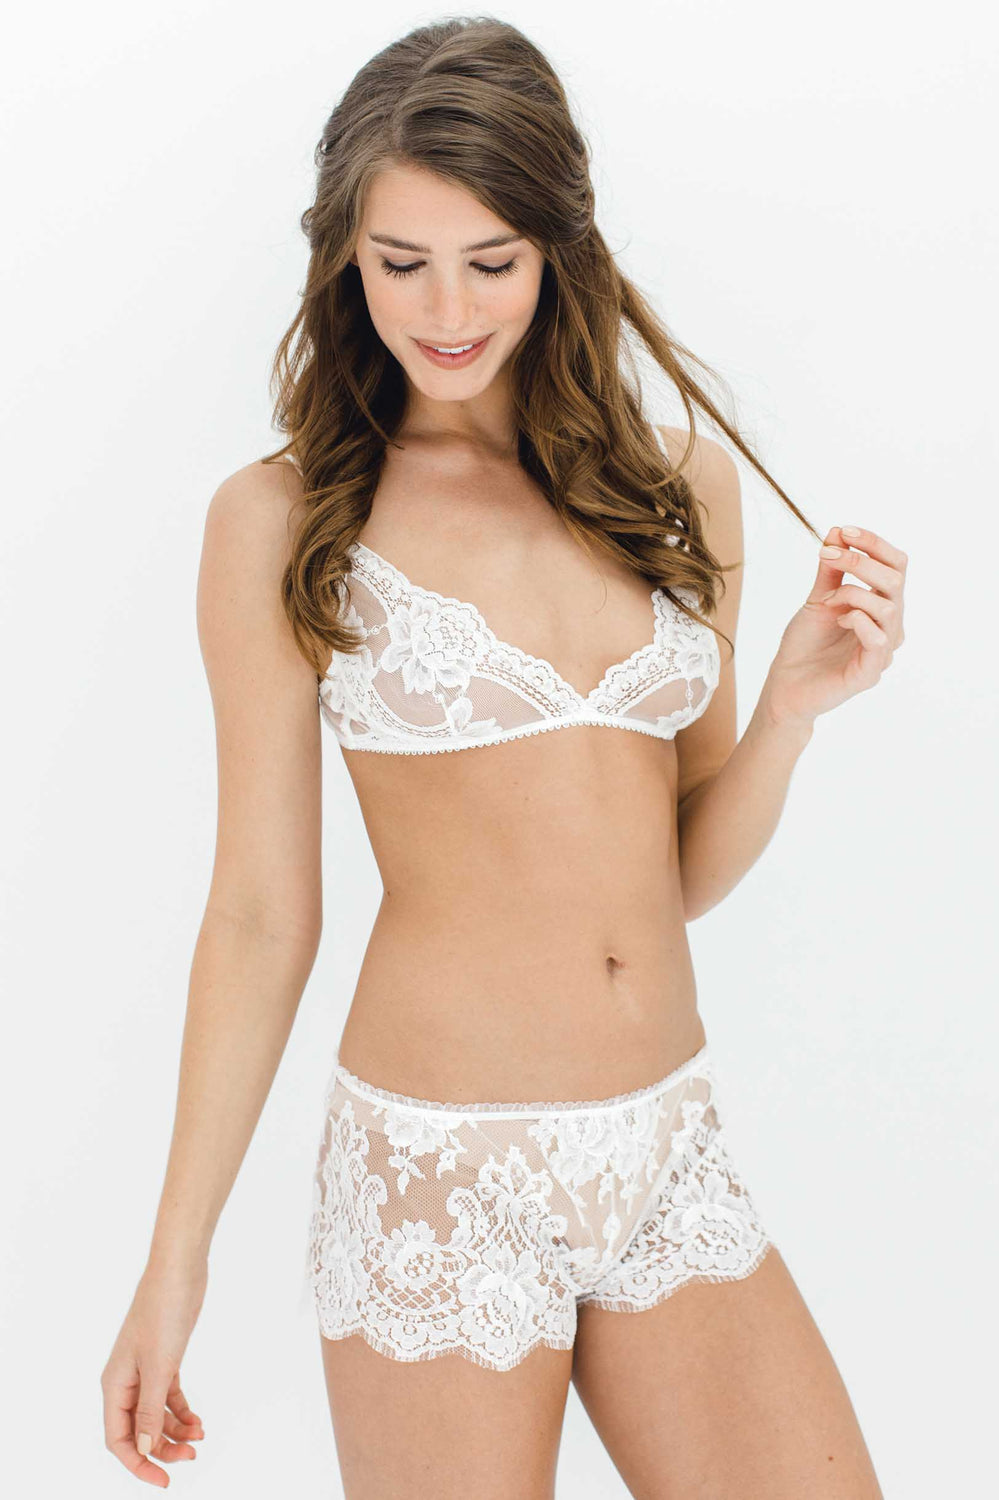 Rosa Scalloped French lace shorties shorts in Ivory